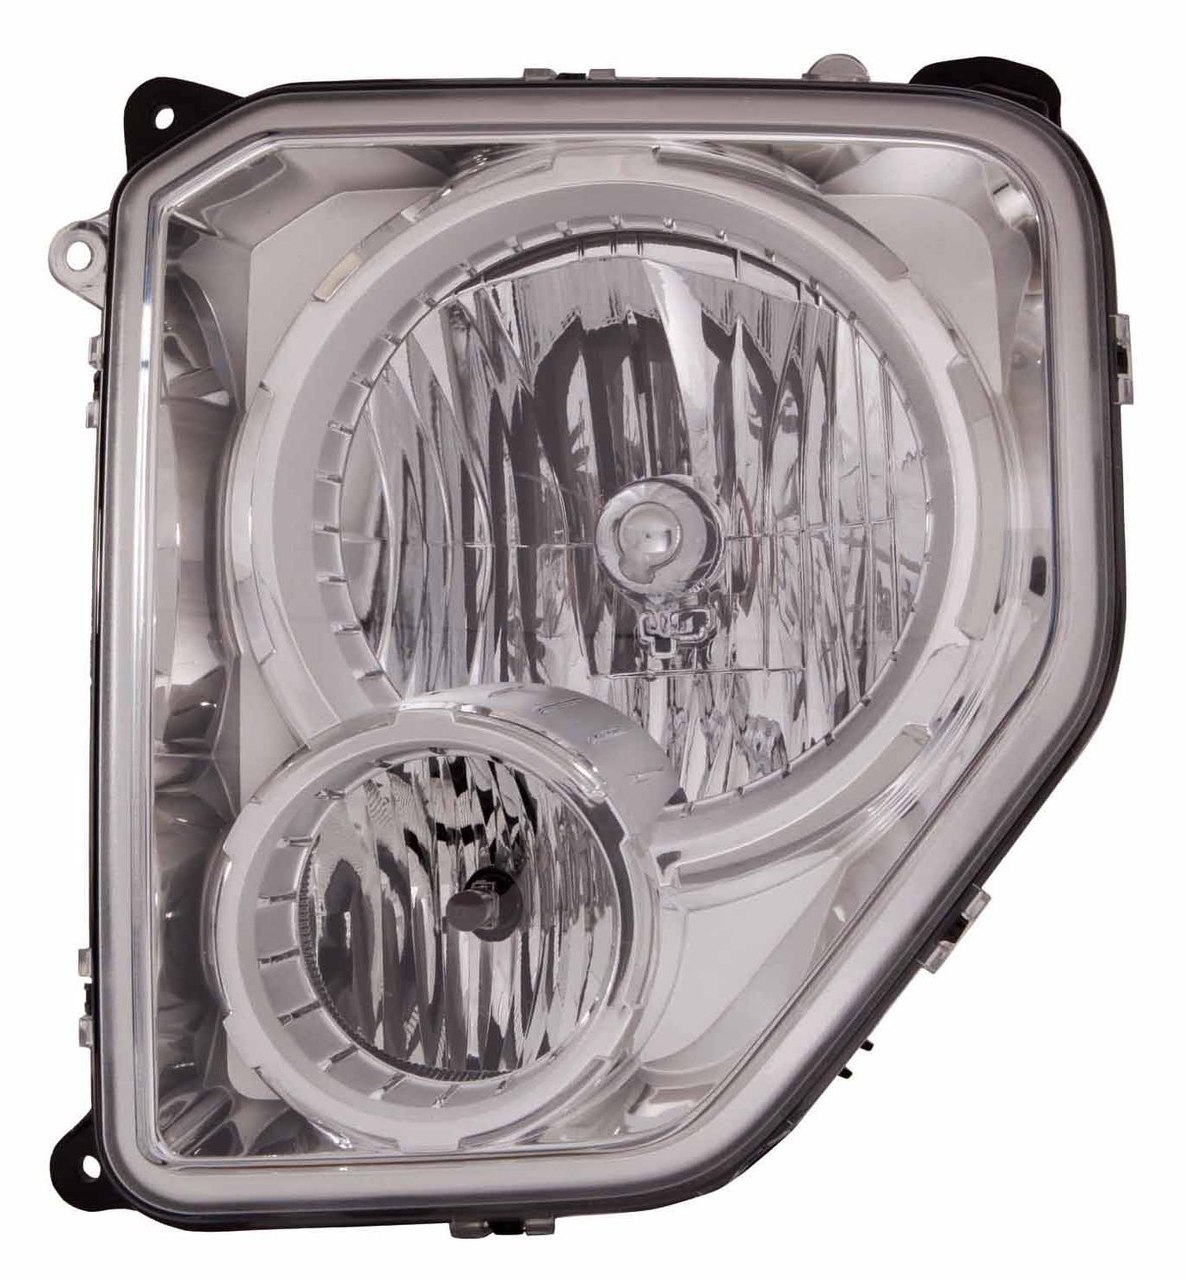 Jeep Liberty 2008 2009 2010 2011 2012 left driver headlight (with fog lamp)